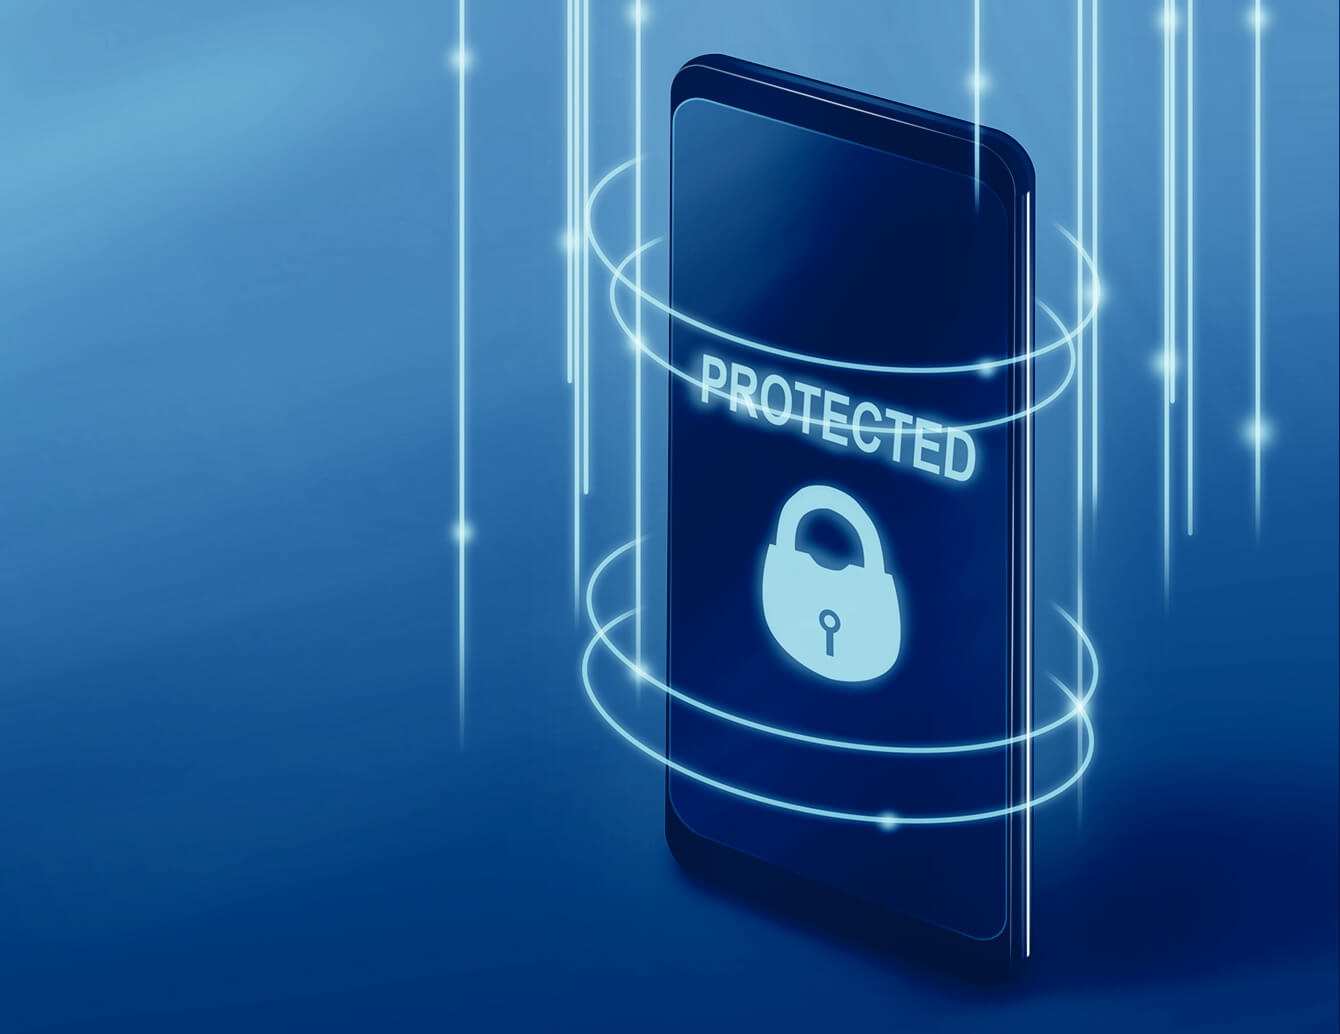 Render of a mobile device with the word PROTECTED on the screen.